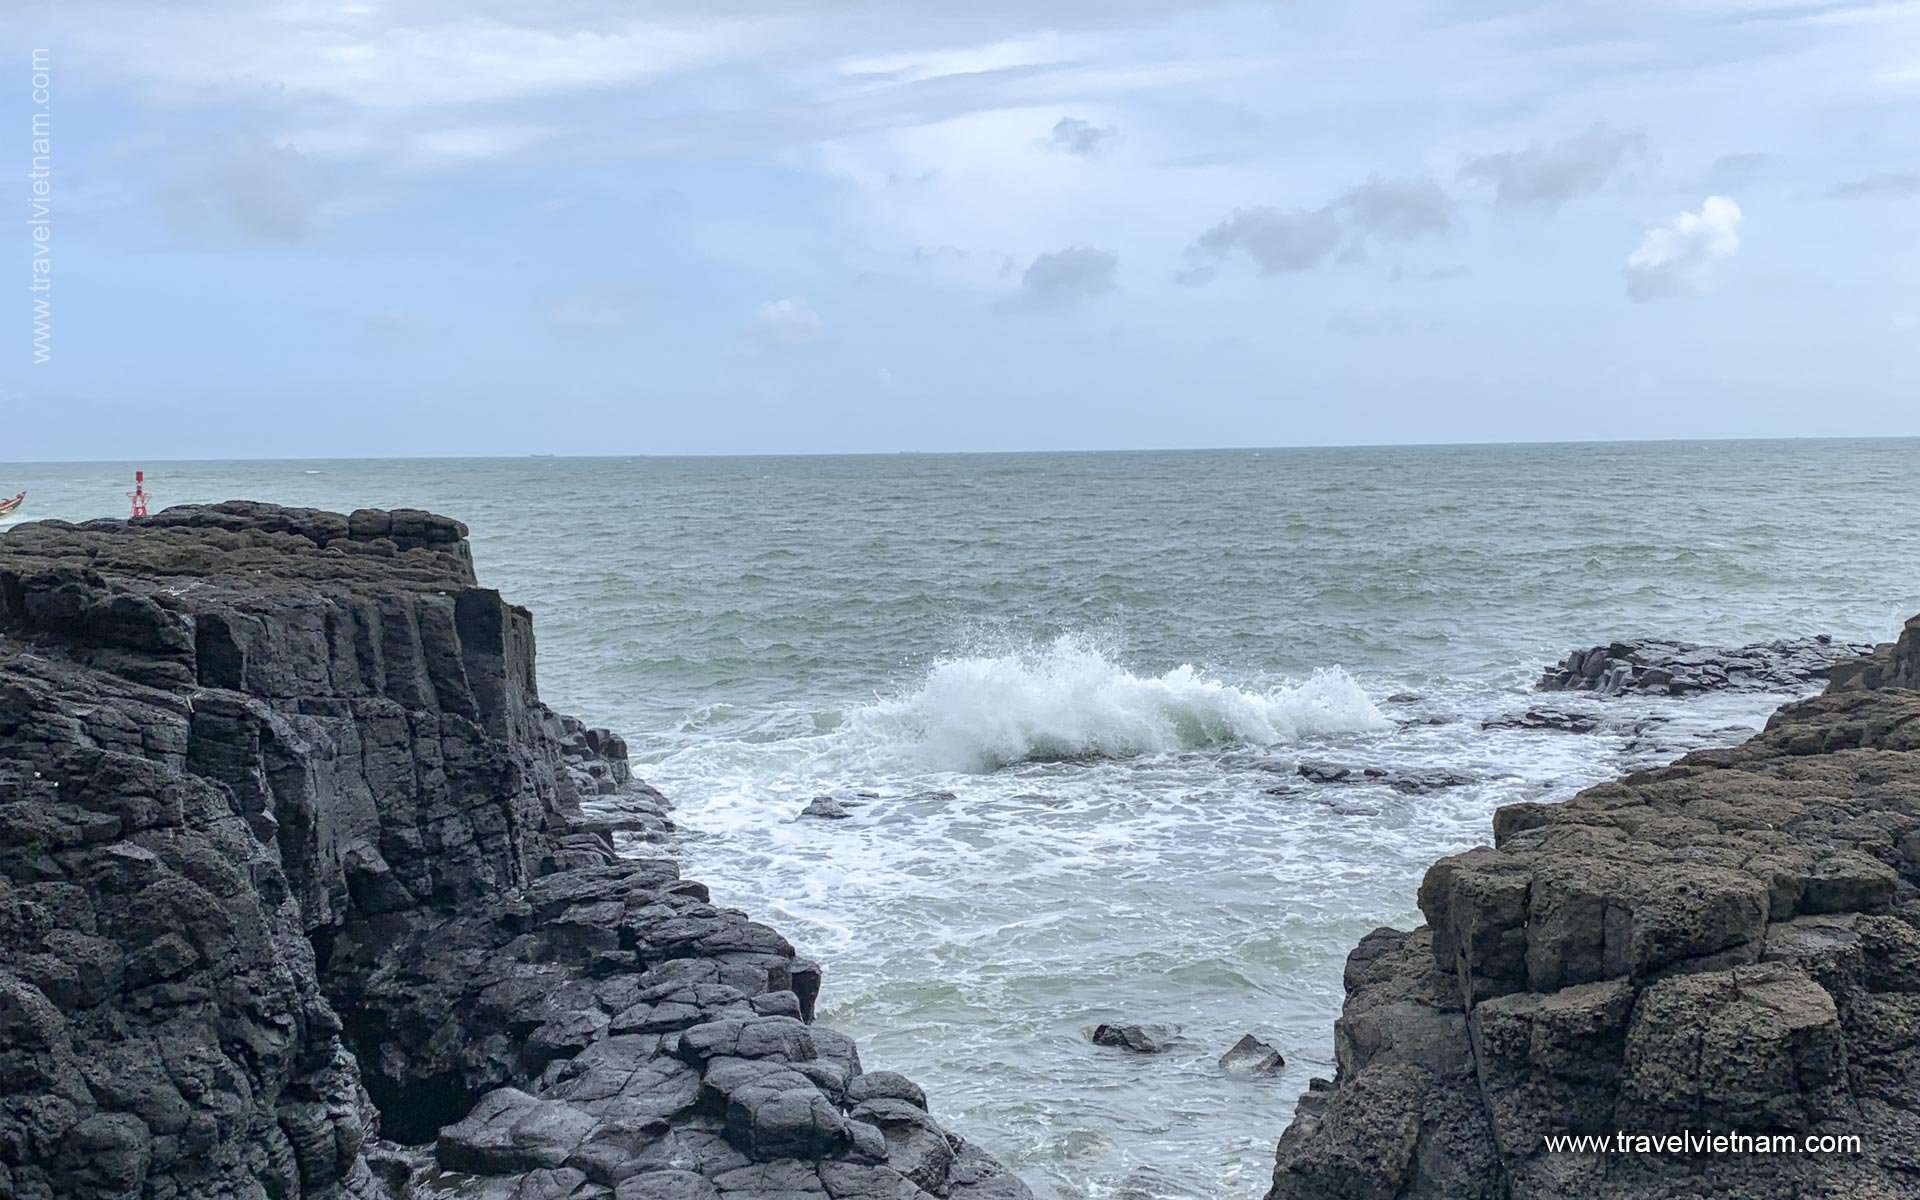 Quang Ngai Beach – How to get there?